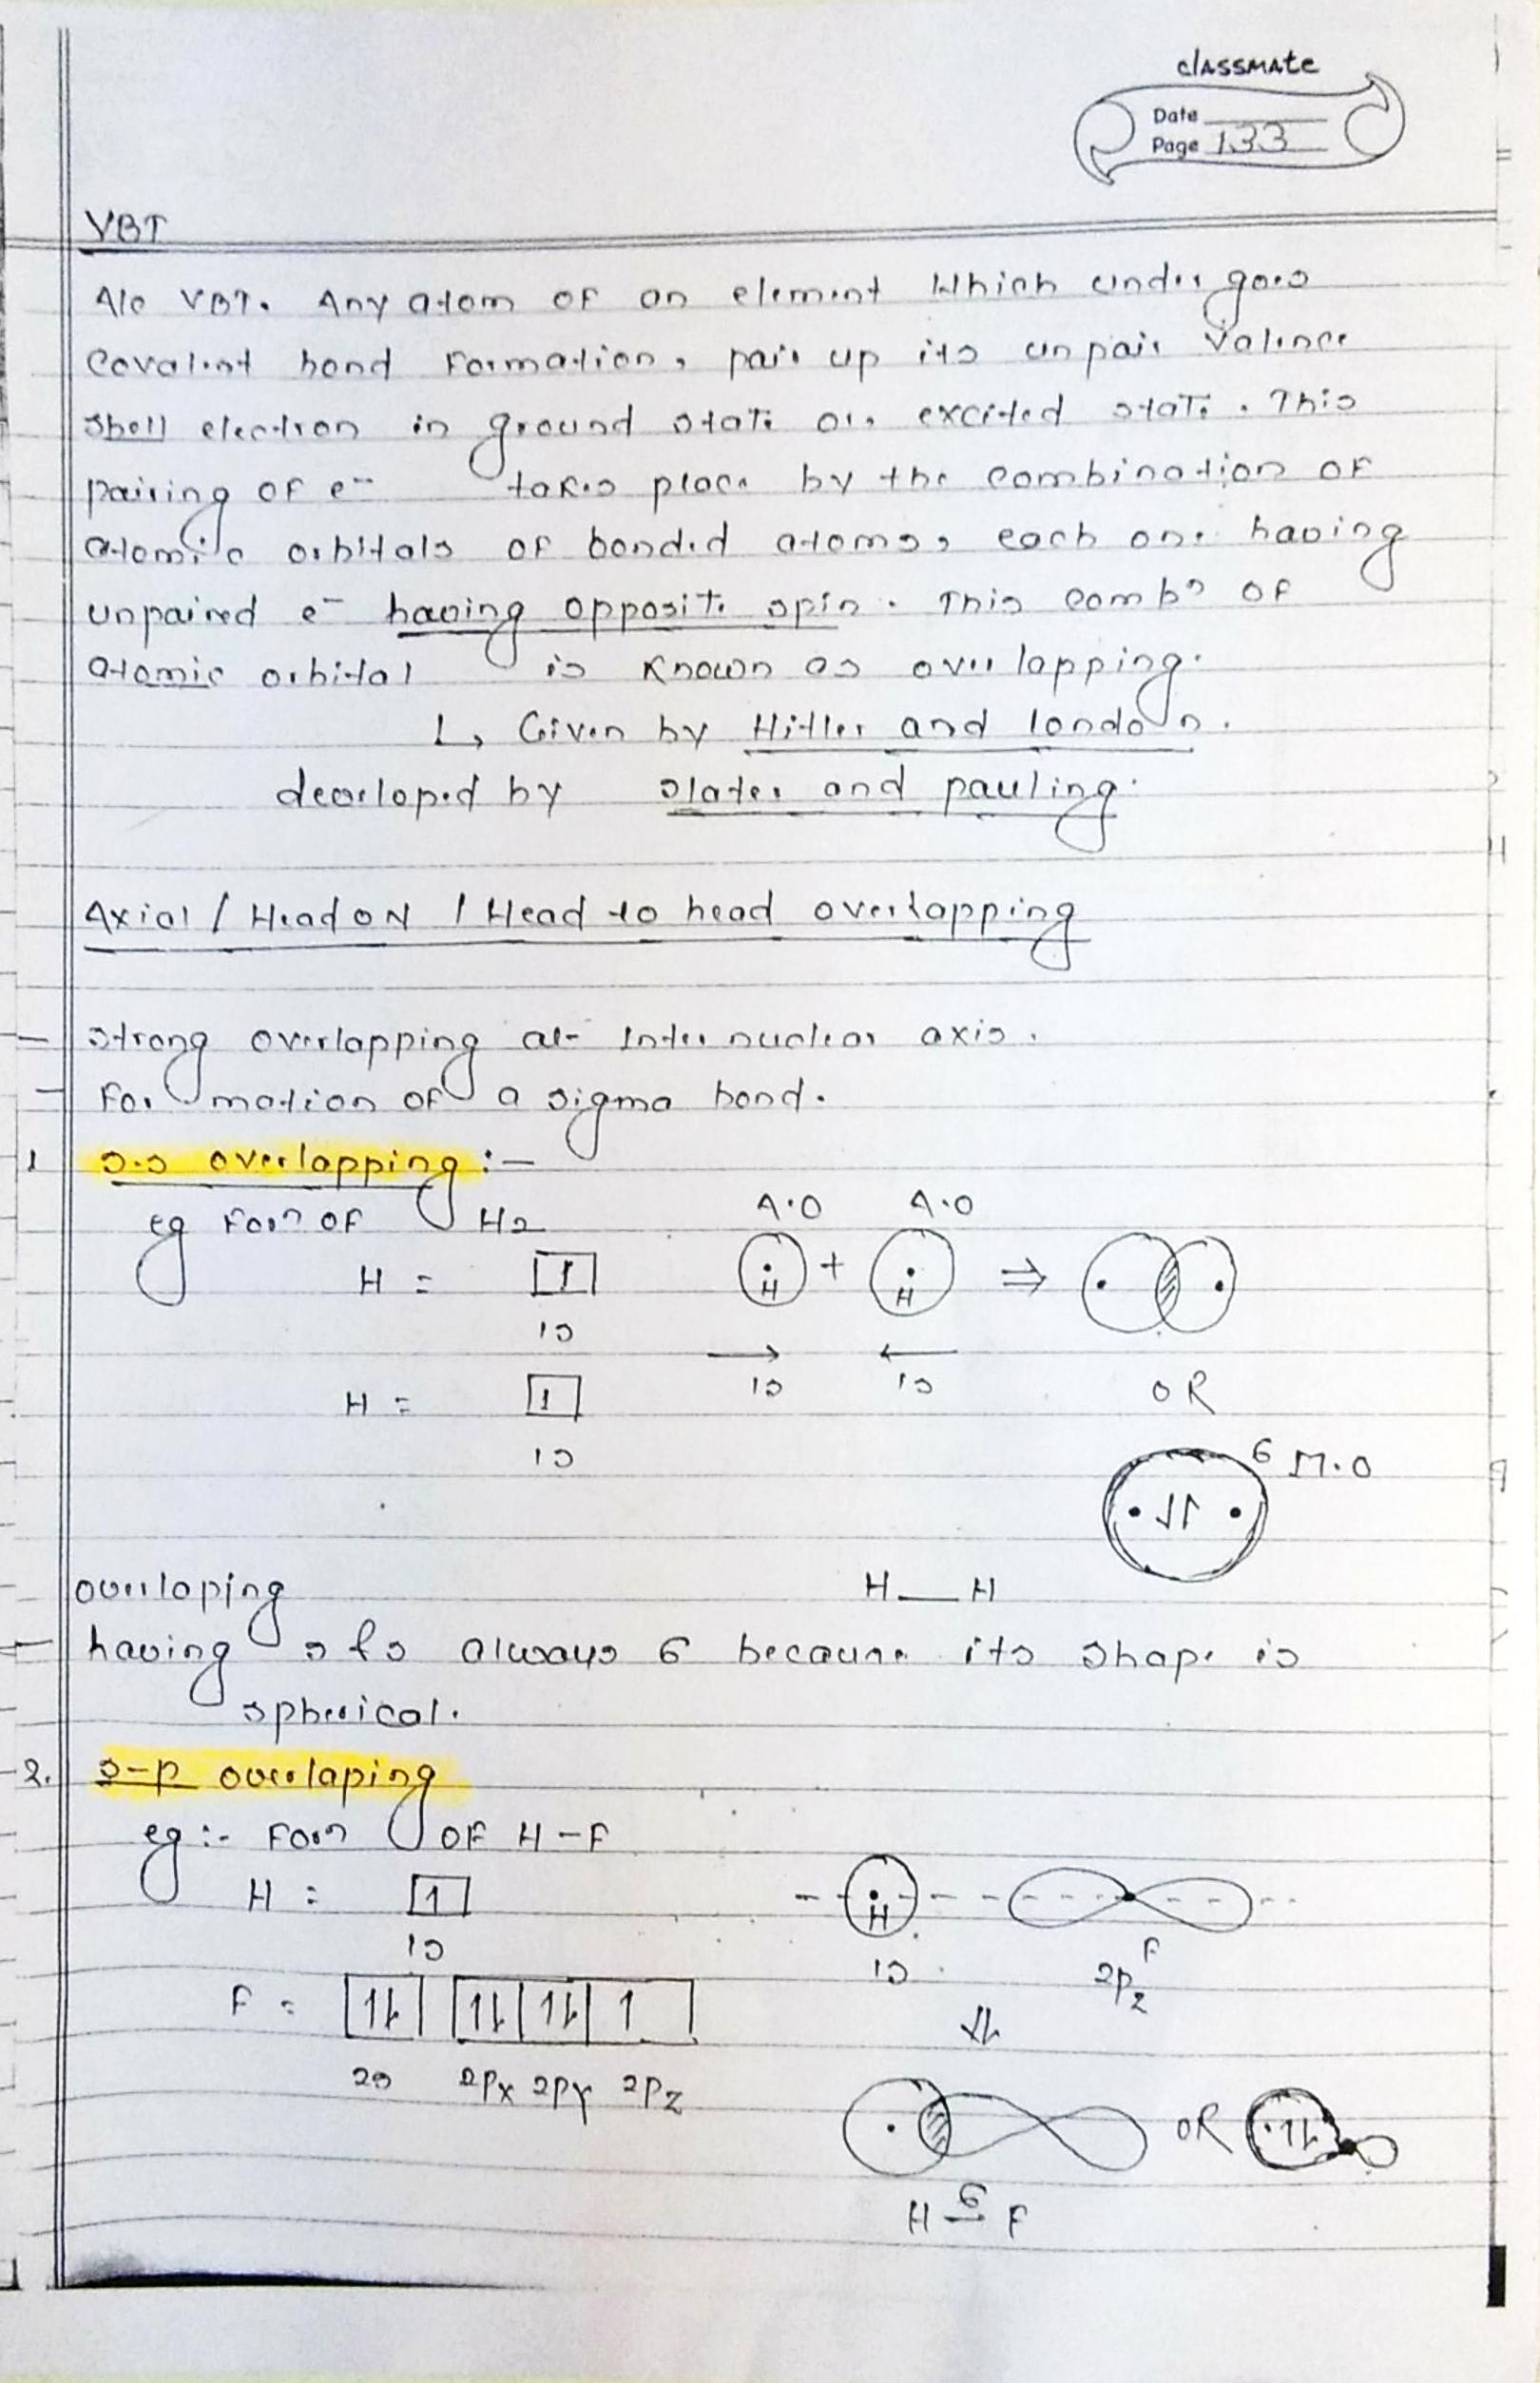 chemical bonding valence bond theory notes handwritten note